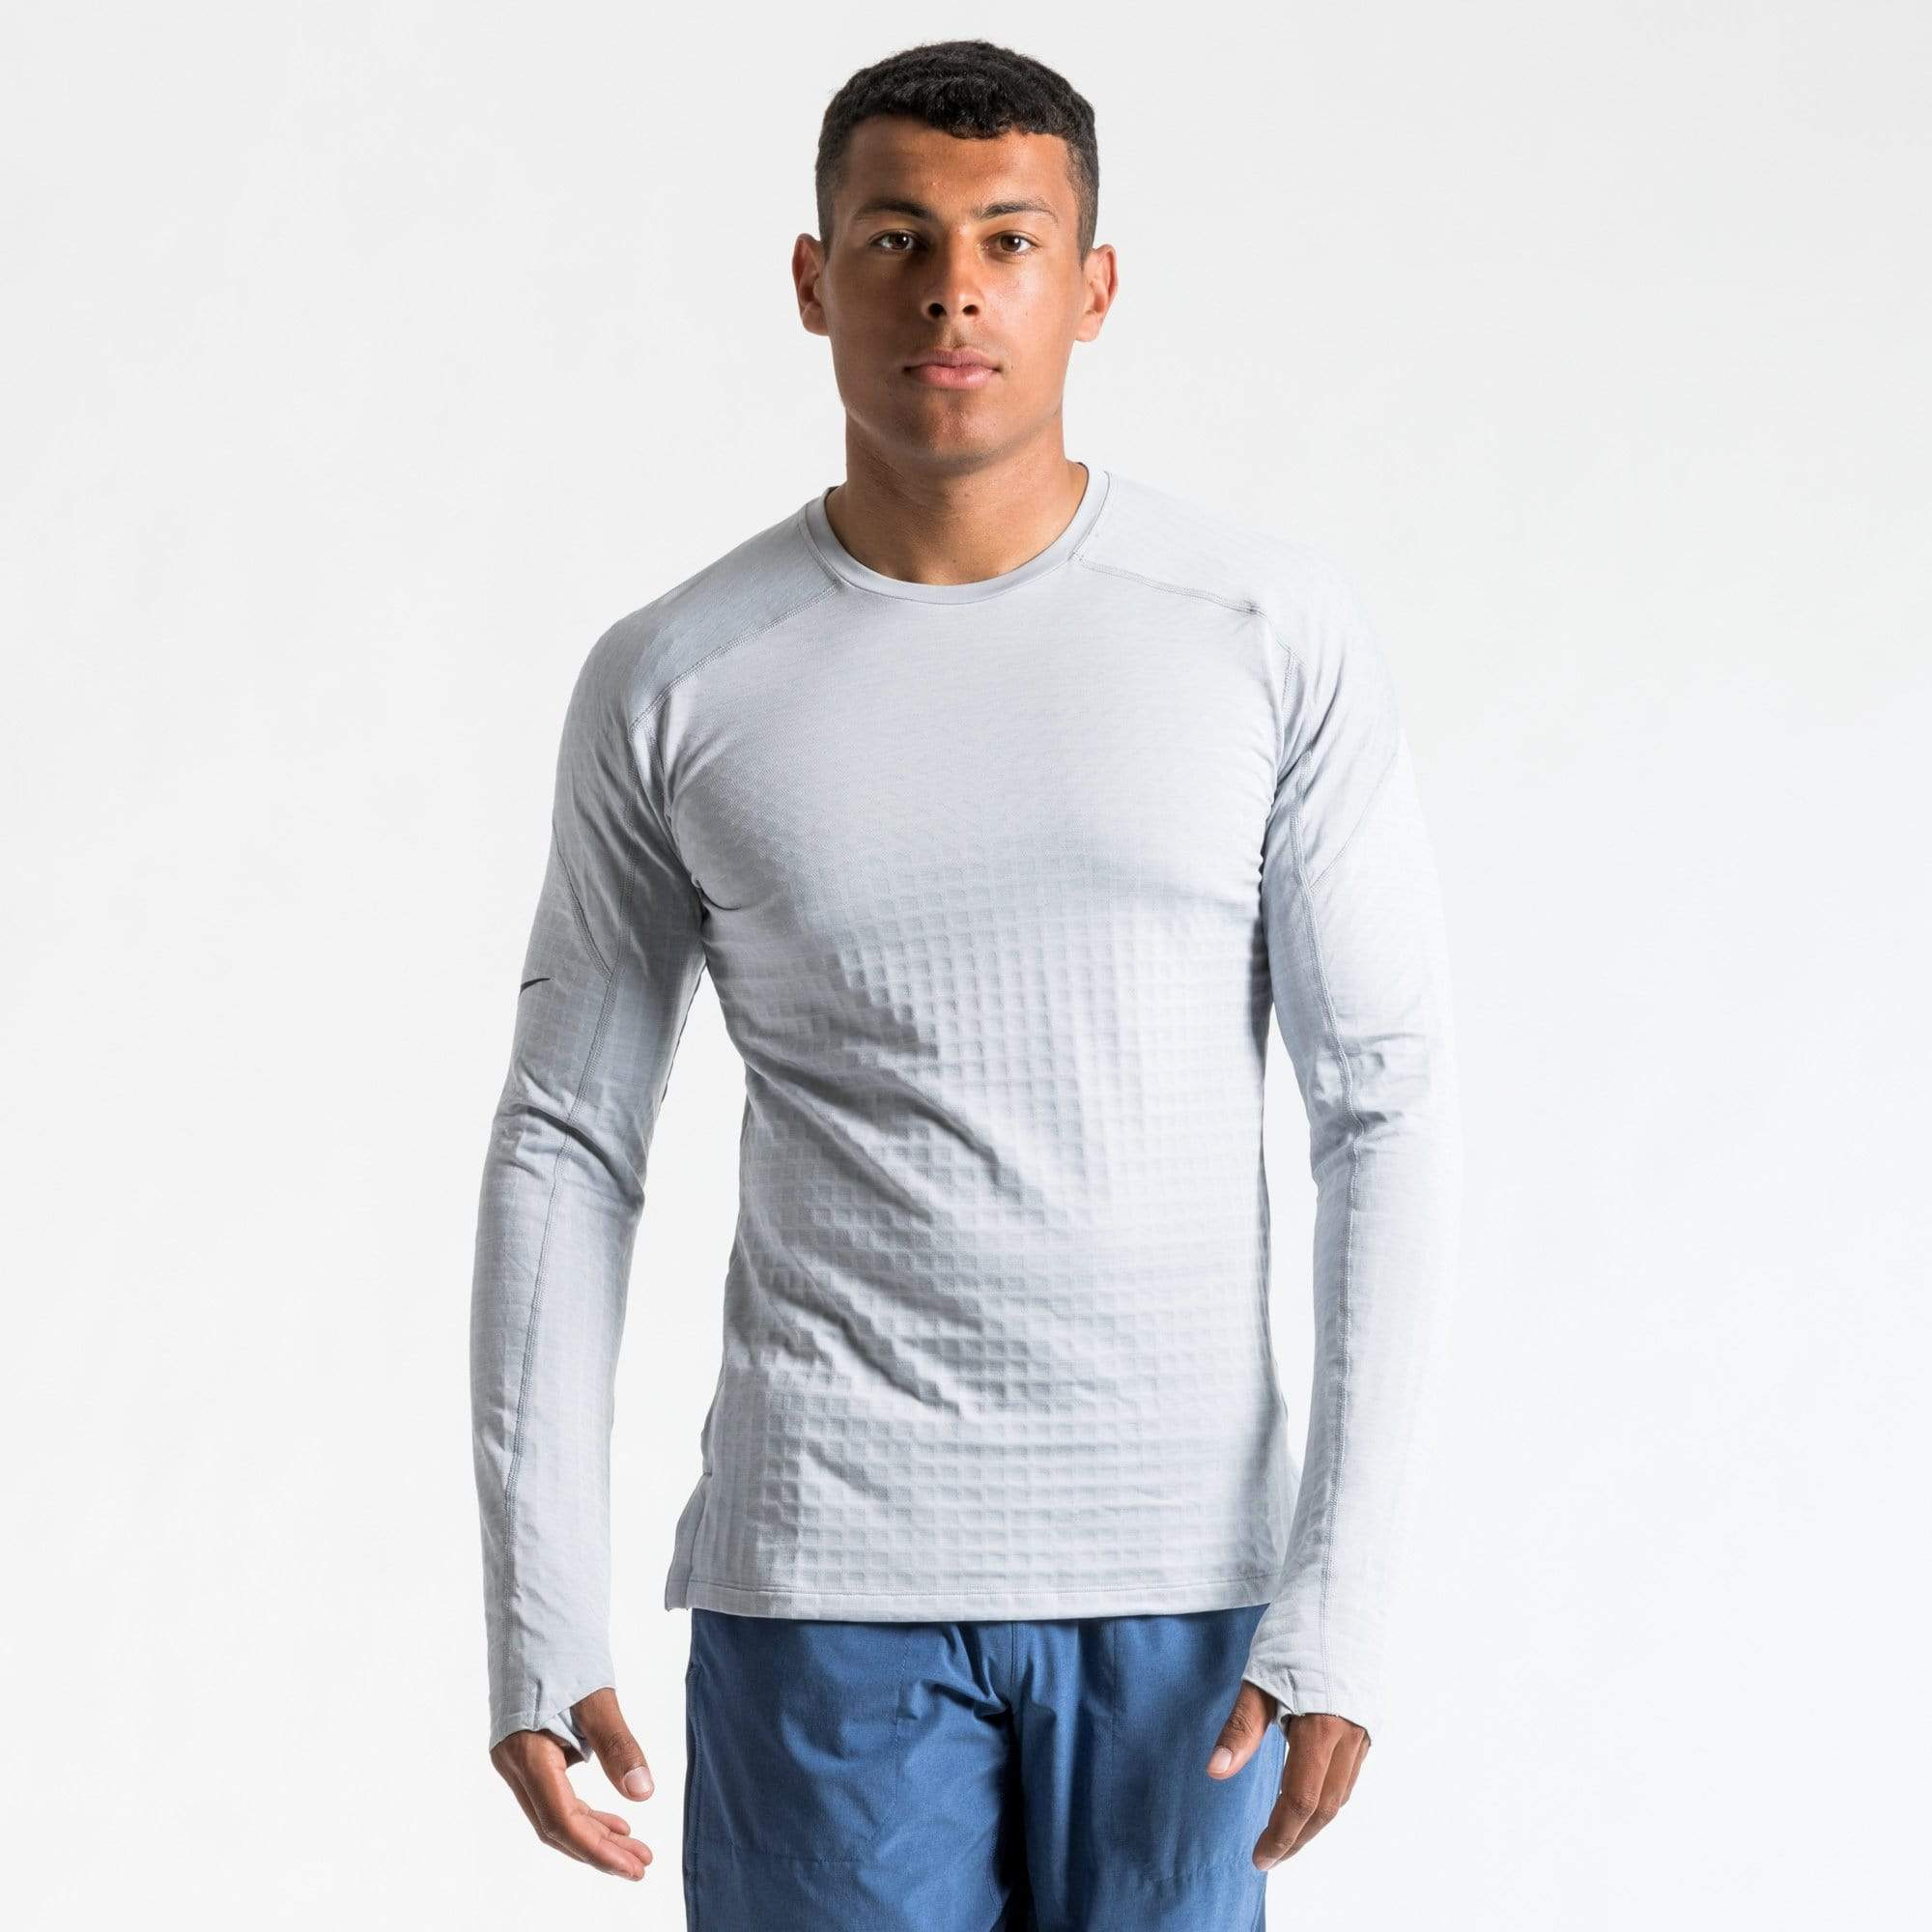 Nike Long Sleeve T-shirts Nike Pro Pack Long Sleeve